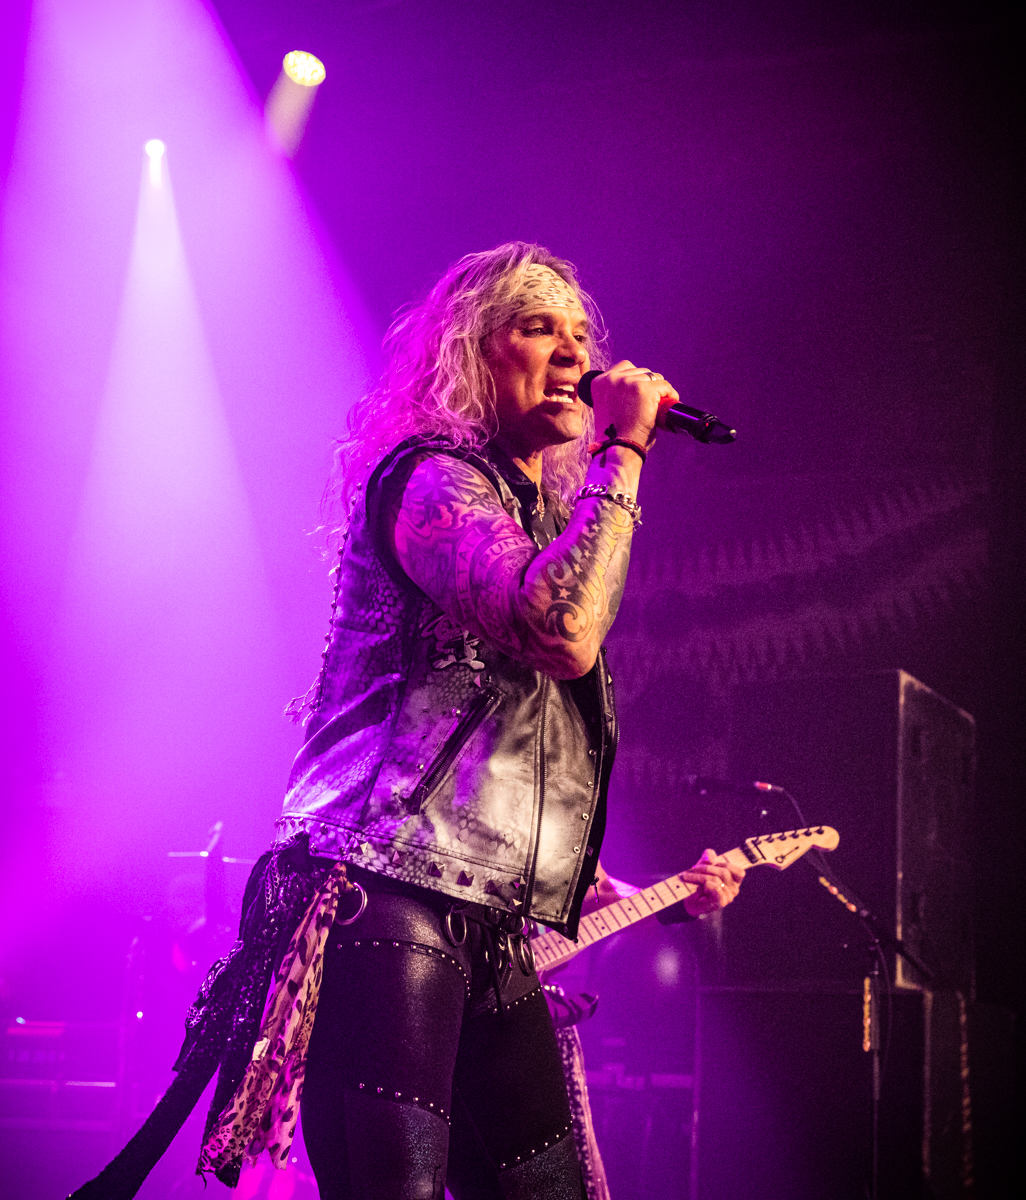 SteelPanther-HouseofBlues-Chicago_IL-20191208-IanBardecki-86